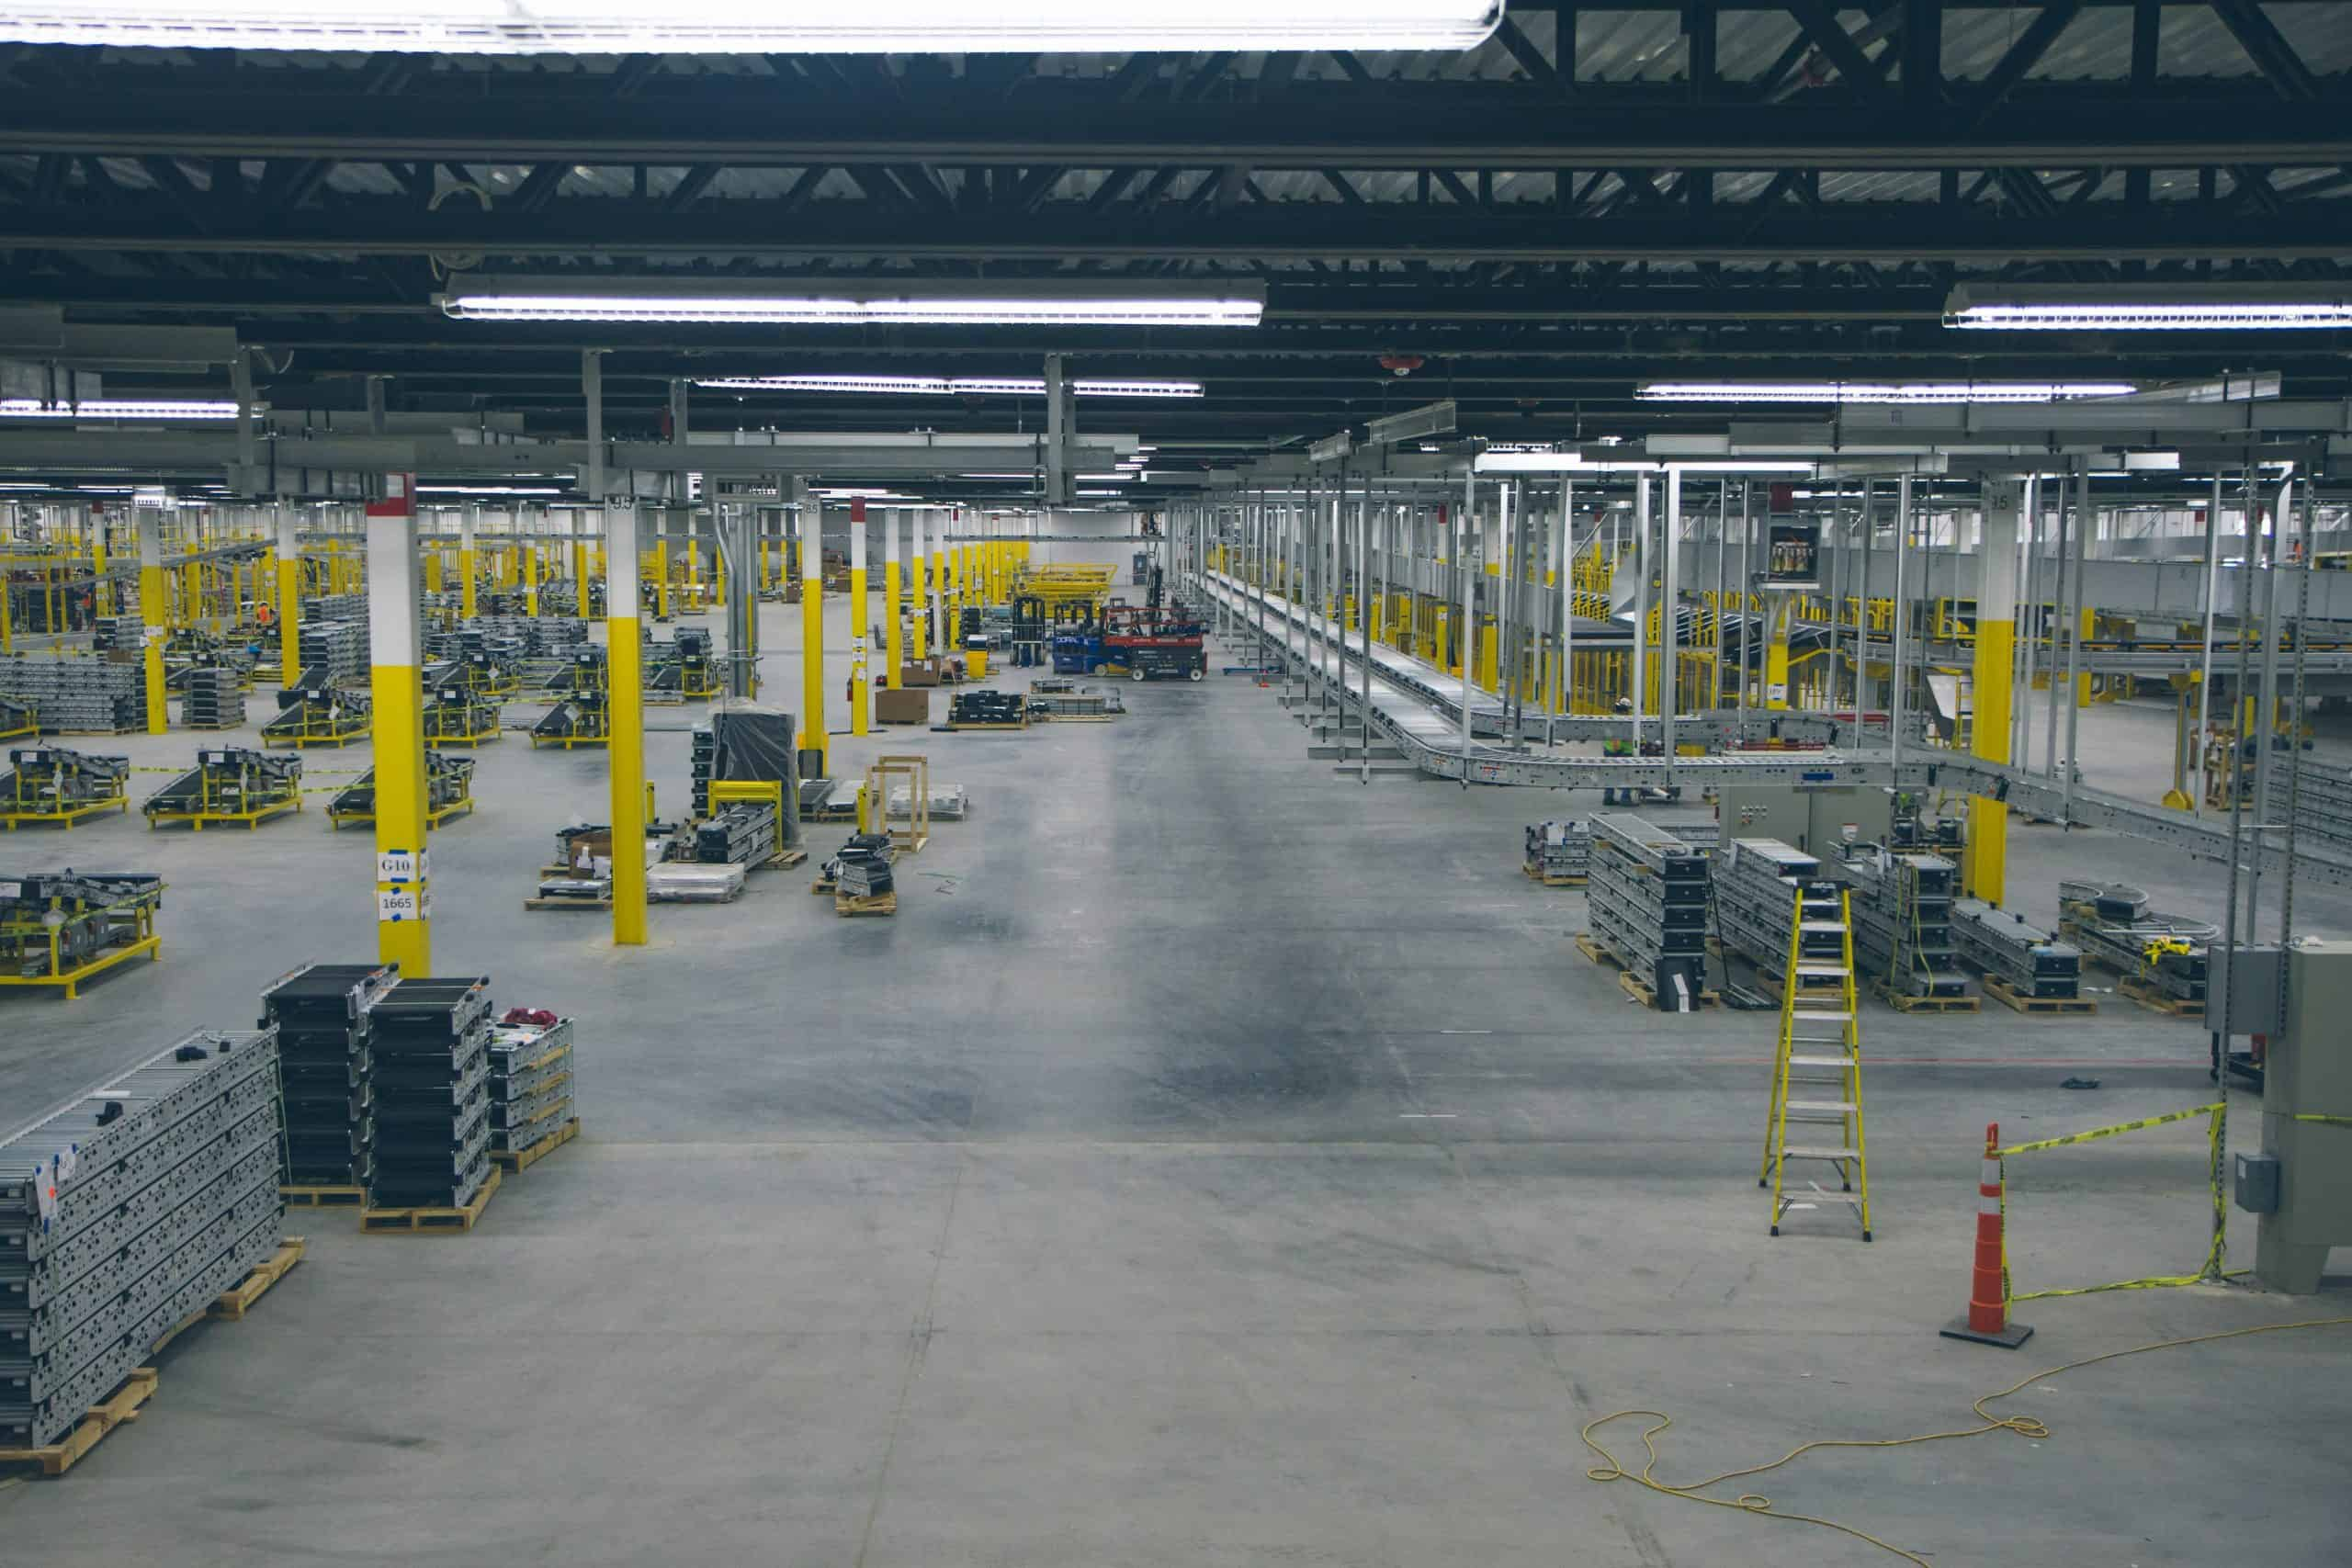 By the year 2025, it's estimated the U.S. will need 1 billion additional square feet of industrial real estate.